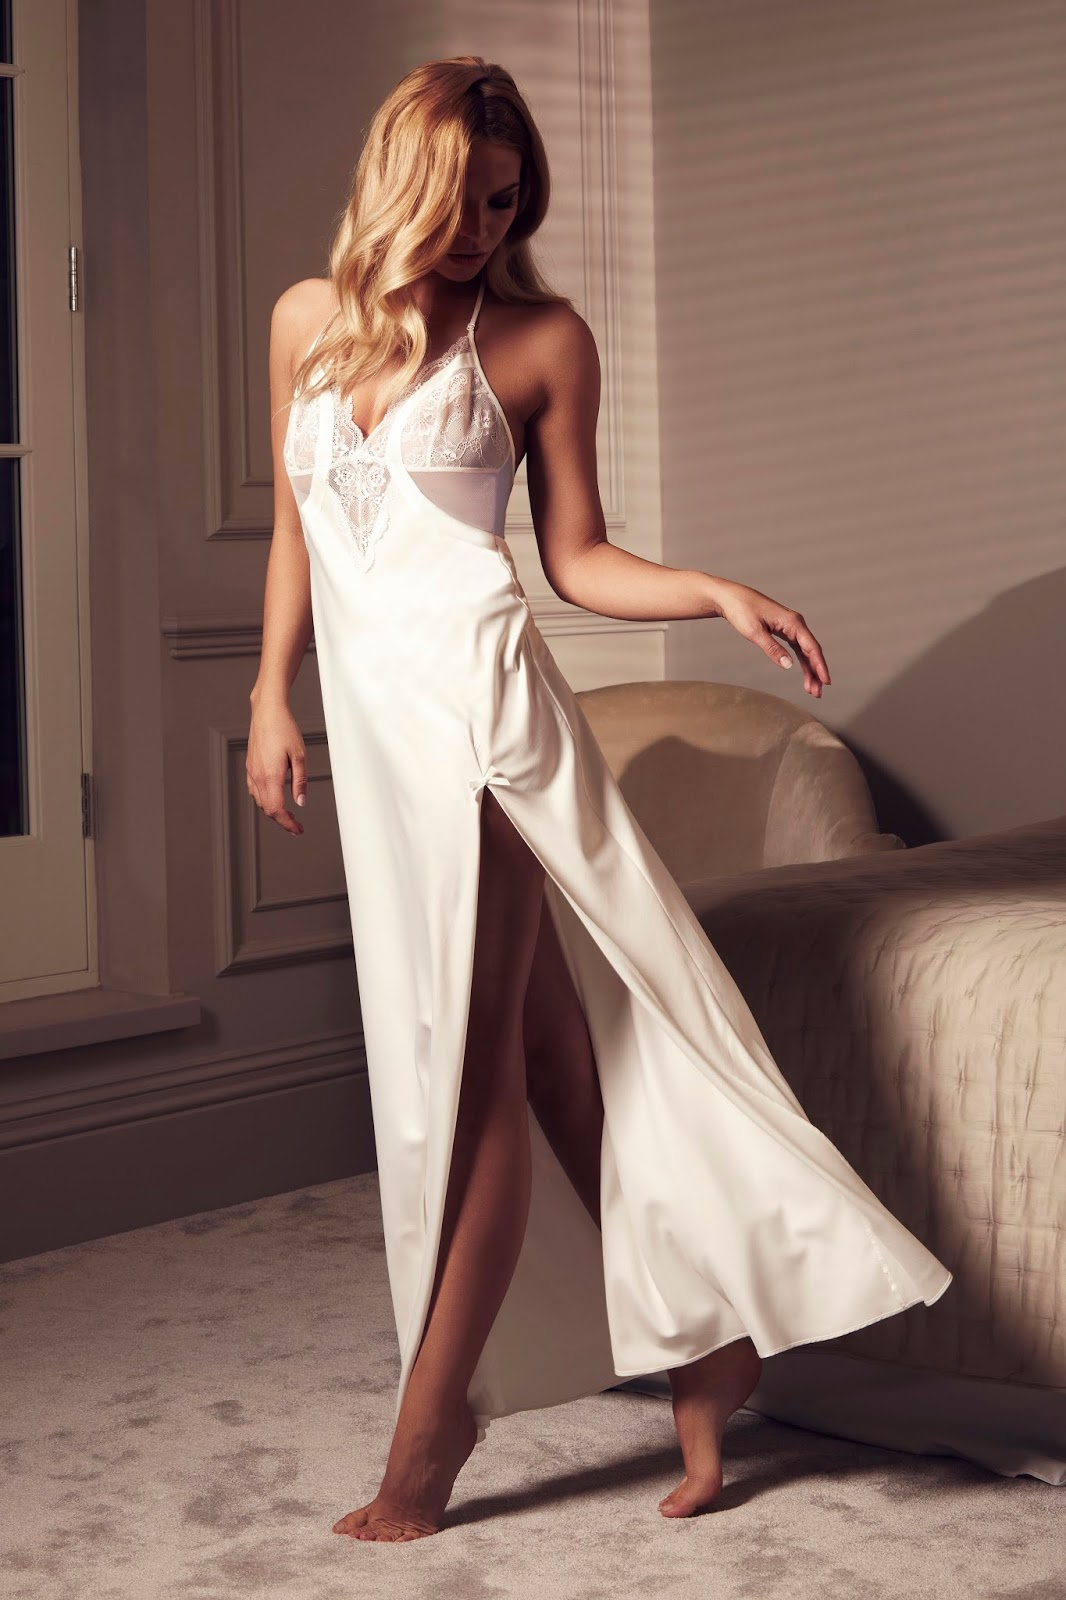 Bridal Lingerie By @Ann_Summers